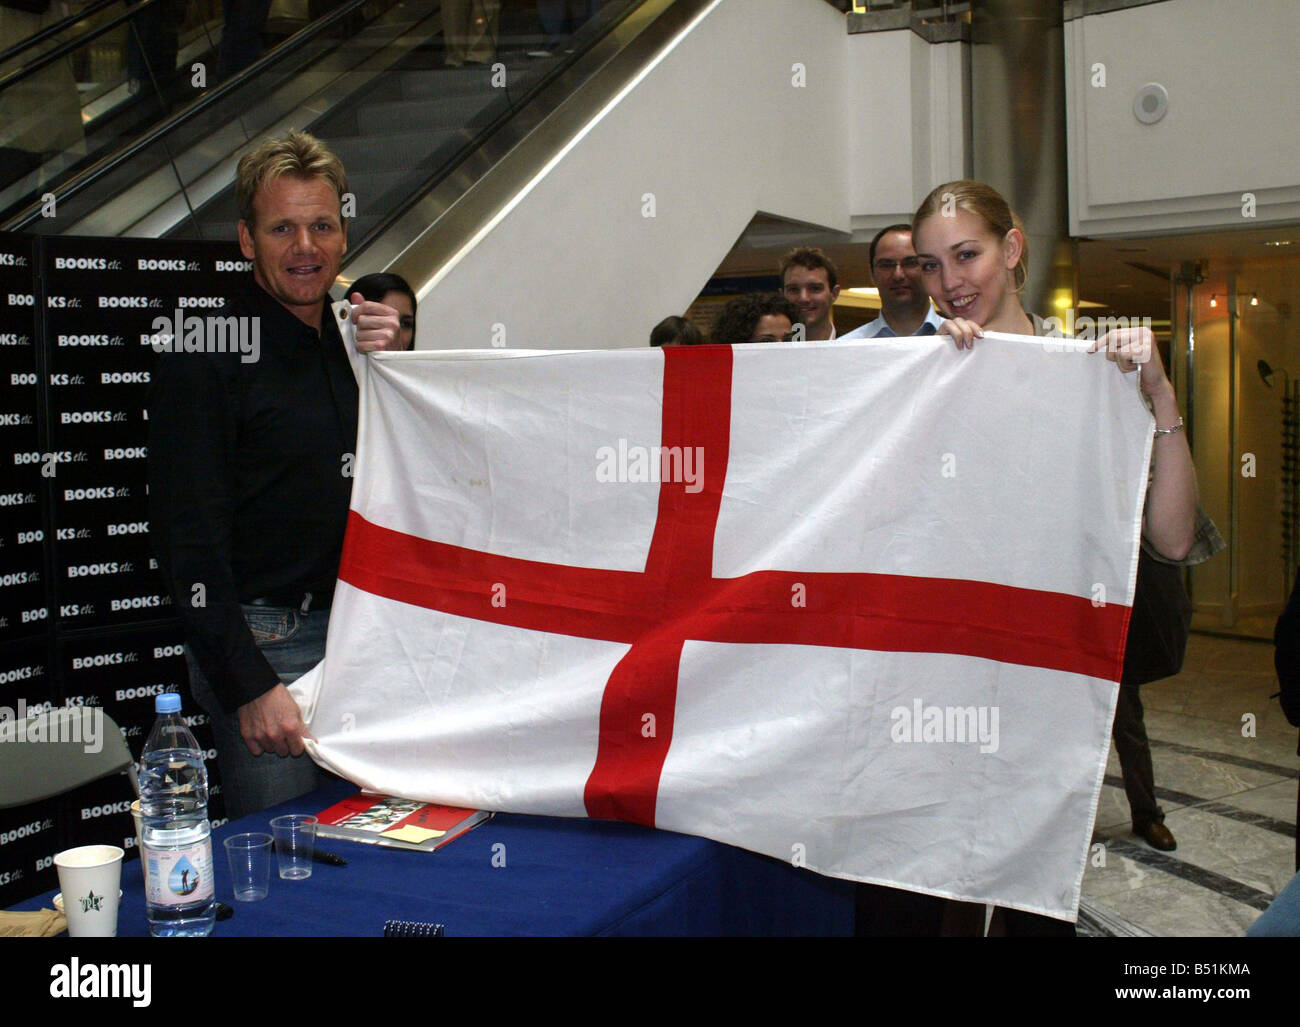 gordon ramsay signs copies of his new book at canary wharf holding stock photo royalty free. Black Bedroom Furniture Sets. Home Design Ideas